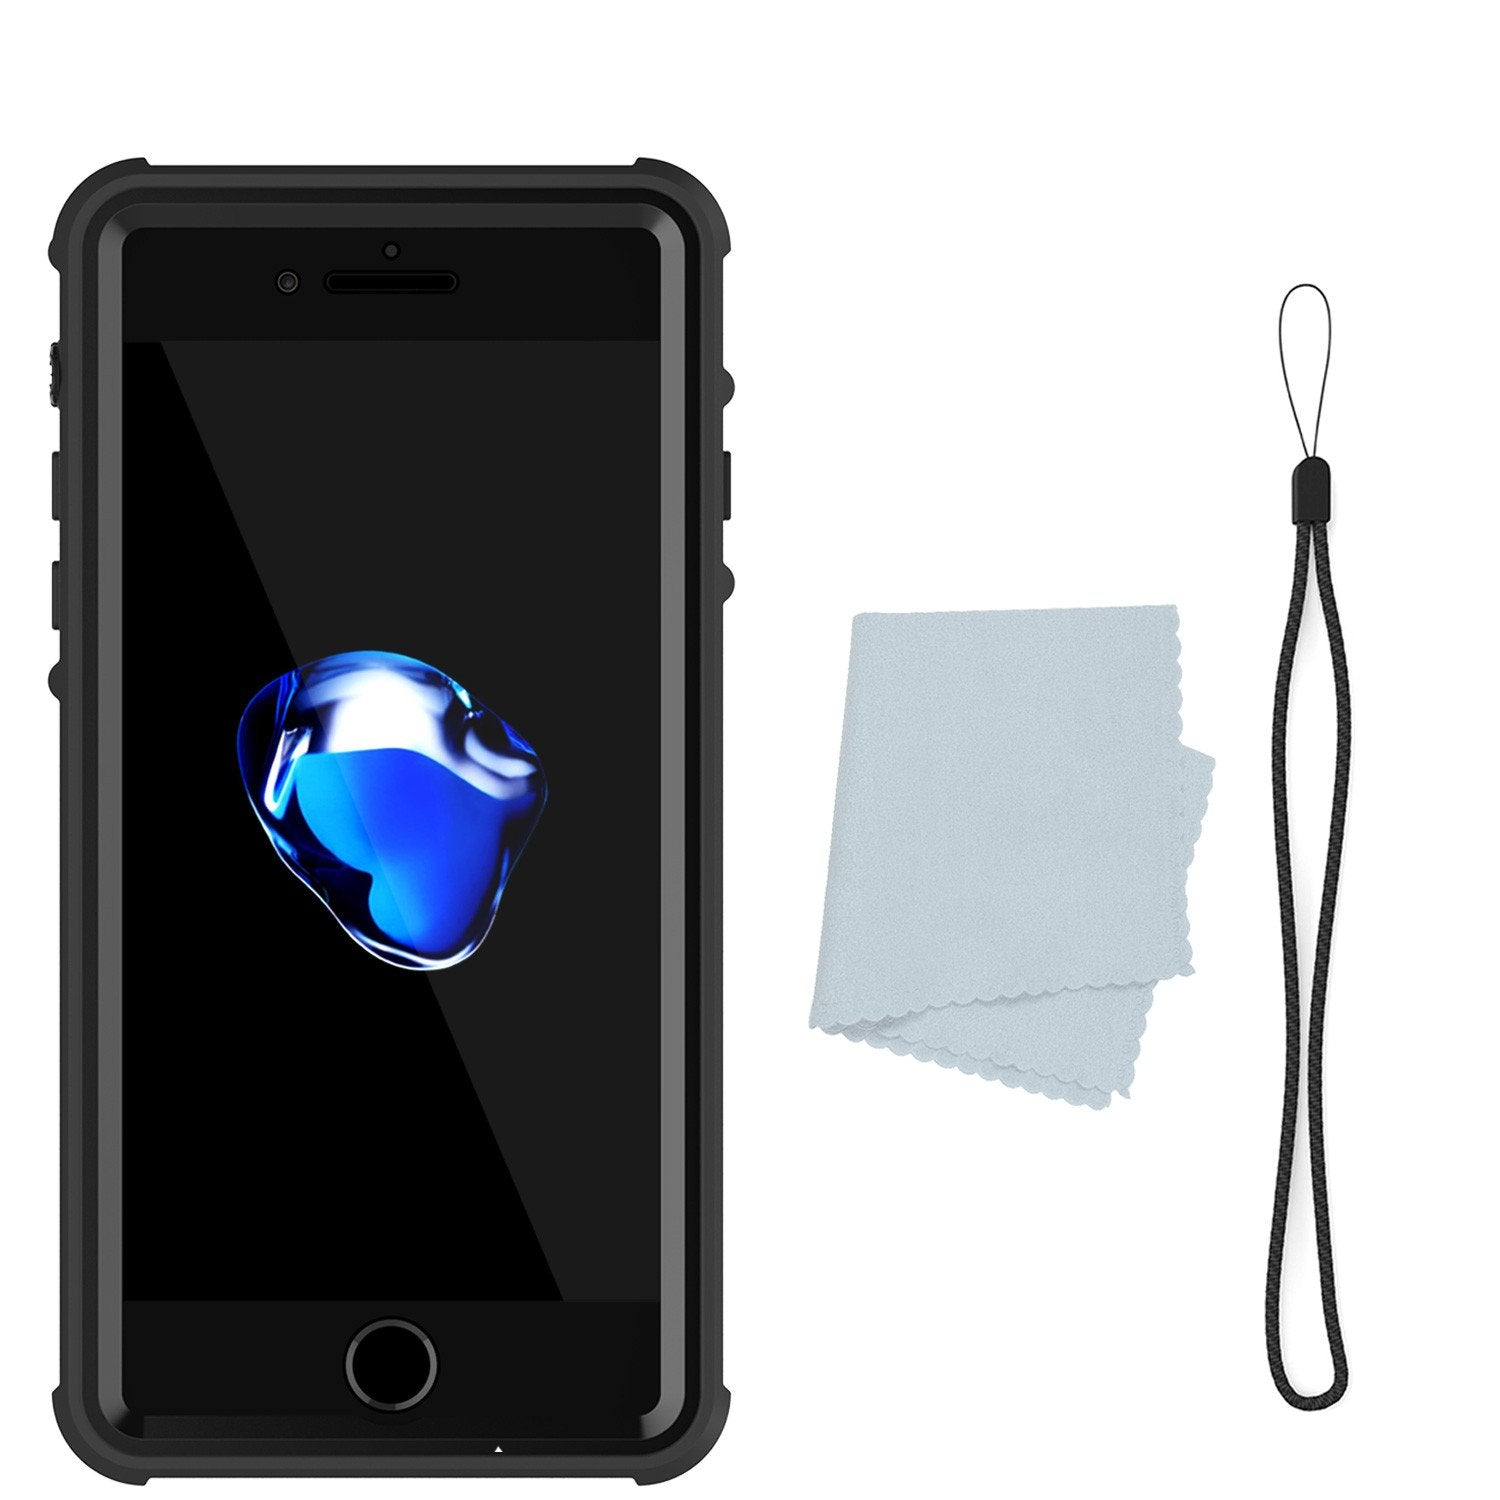 iPhone 8 Waterproof Case, PUNKCase [CRYSTAL SERIES] W/ Attached Screen Protector [BLACK]